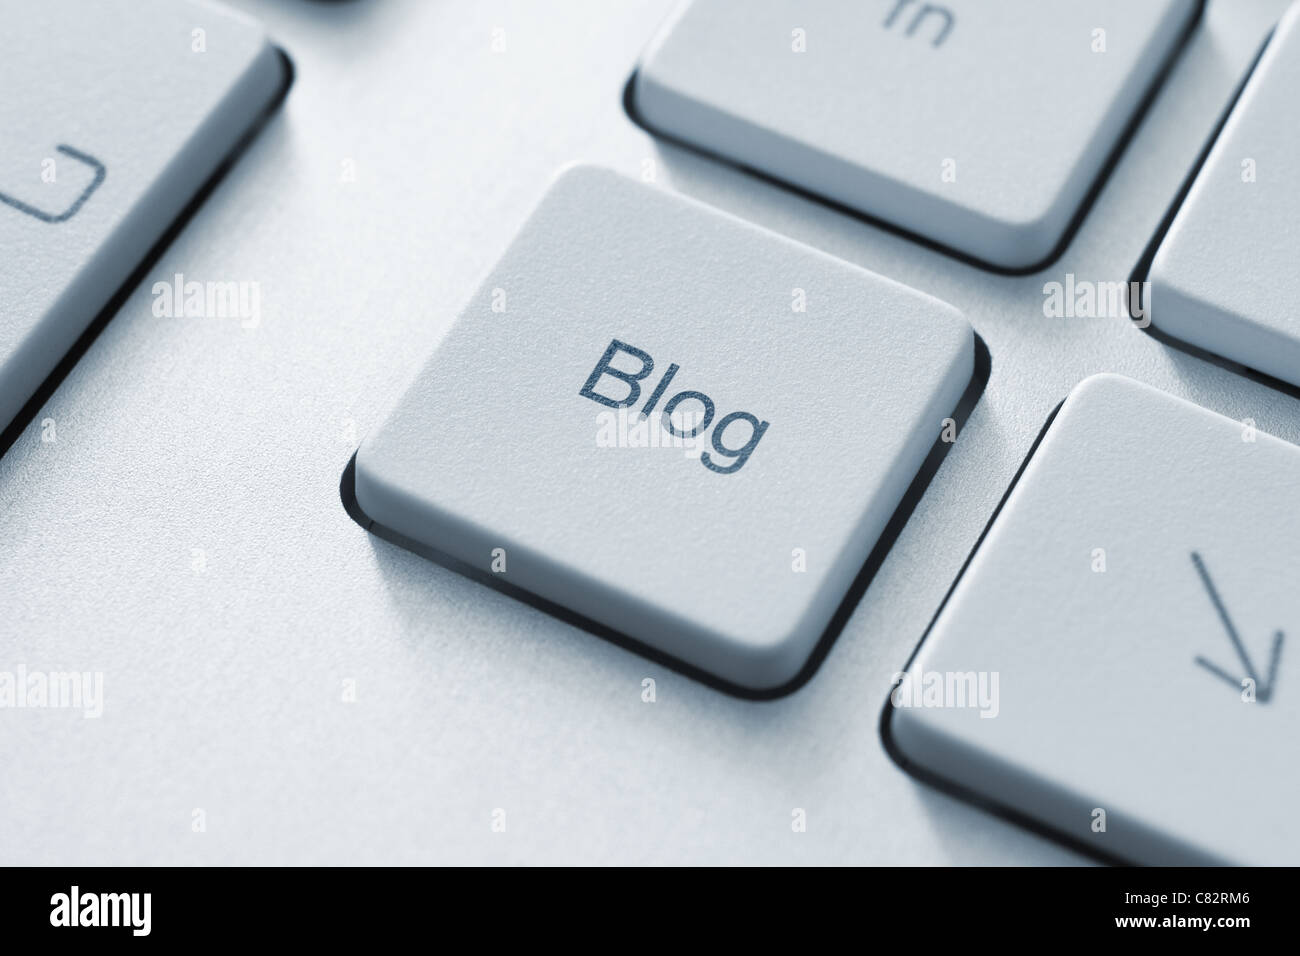 Blog button on the keyboard. Toned Image. - Stock Image